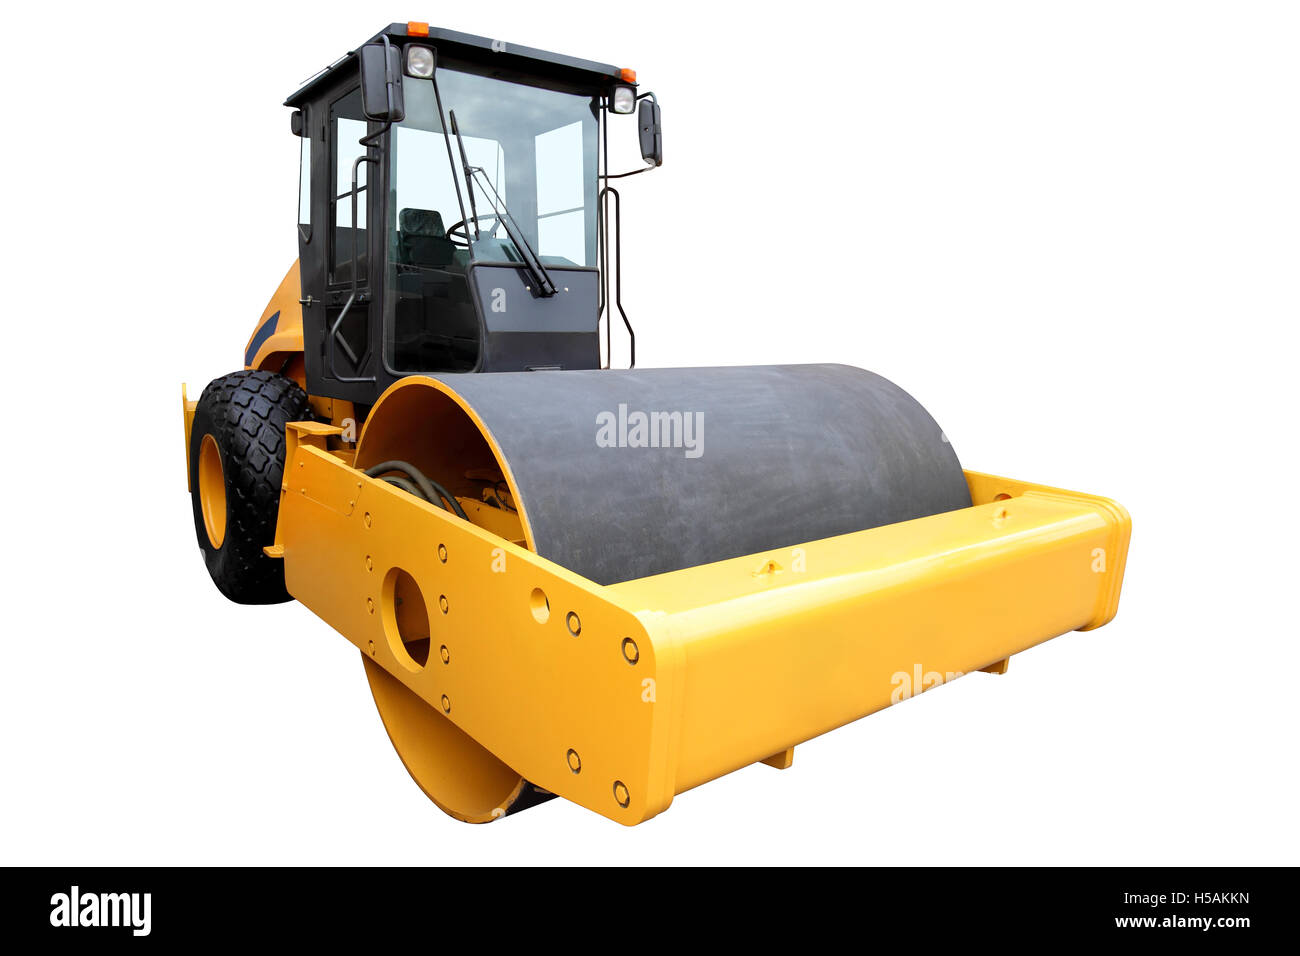 Yellow road-roller for the ground consolidation, isolated on a white background - Stock Image